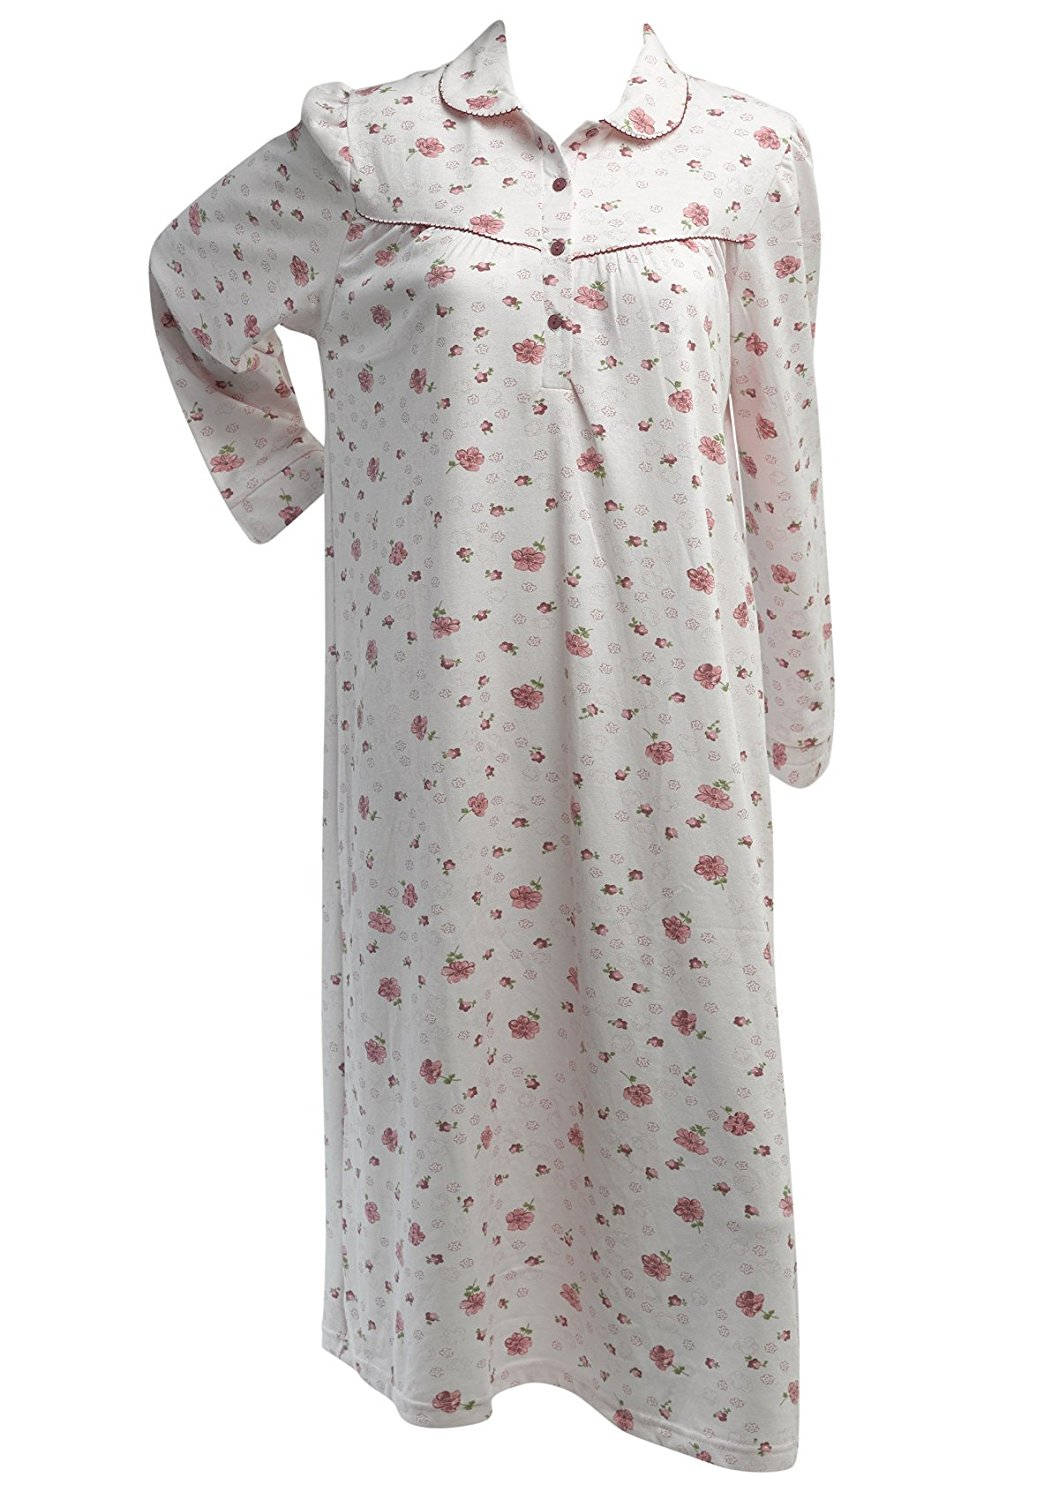 391d9f0371 Get Quotations · Waite Ltd Ladies Floral Rose Knitted Cotton Nightdress  Womens Long Sleeved Nightie Medium - XXL (